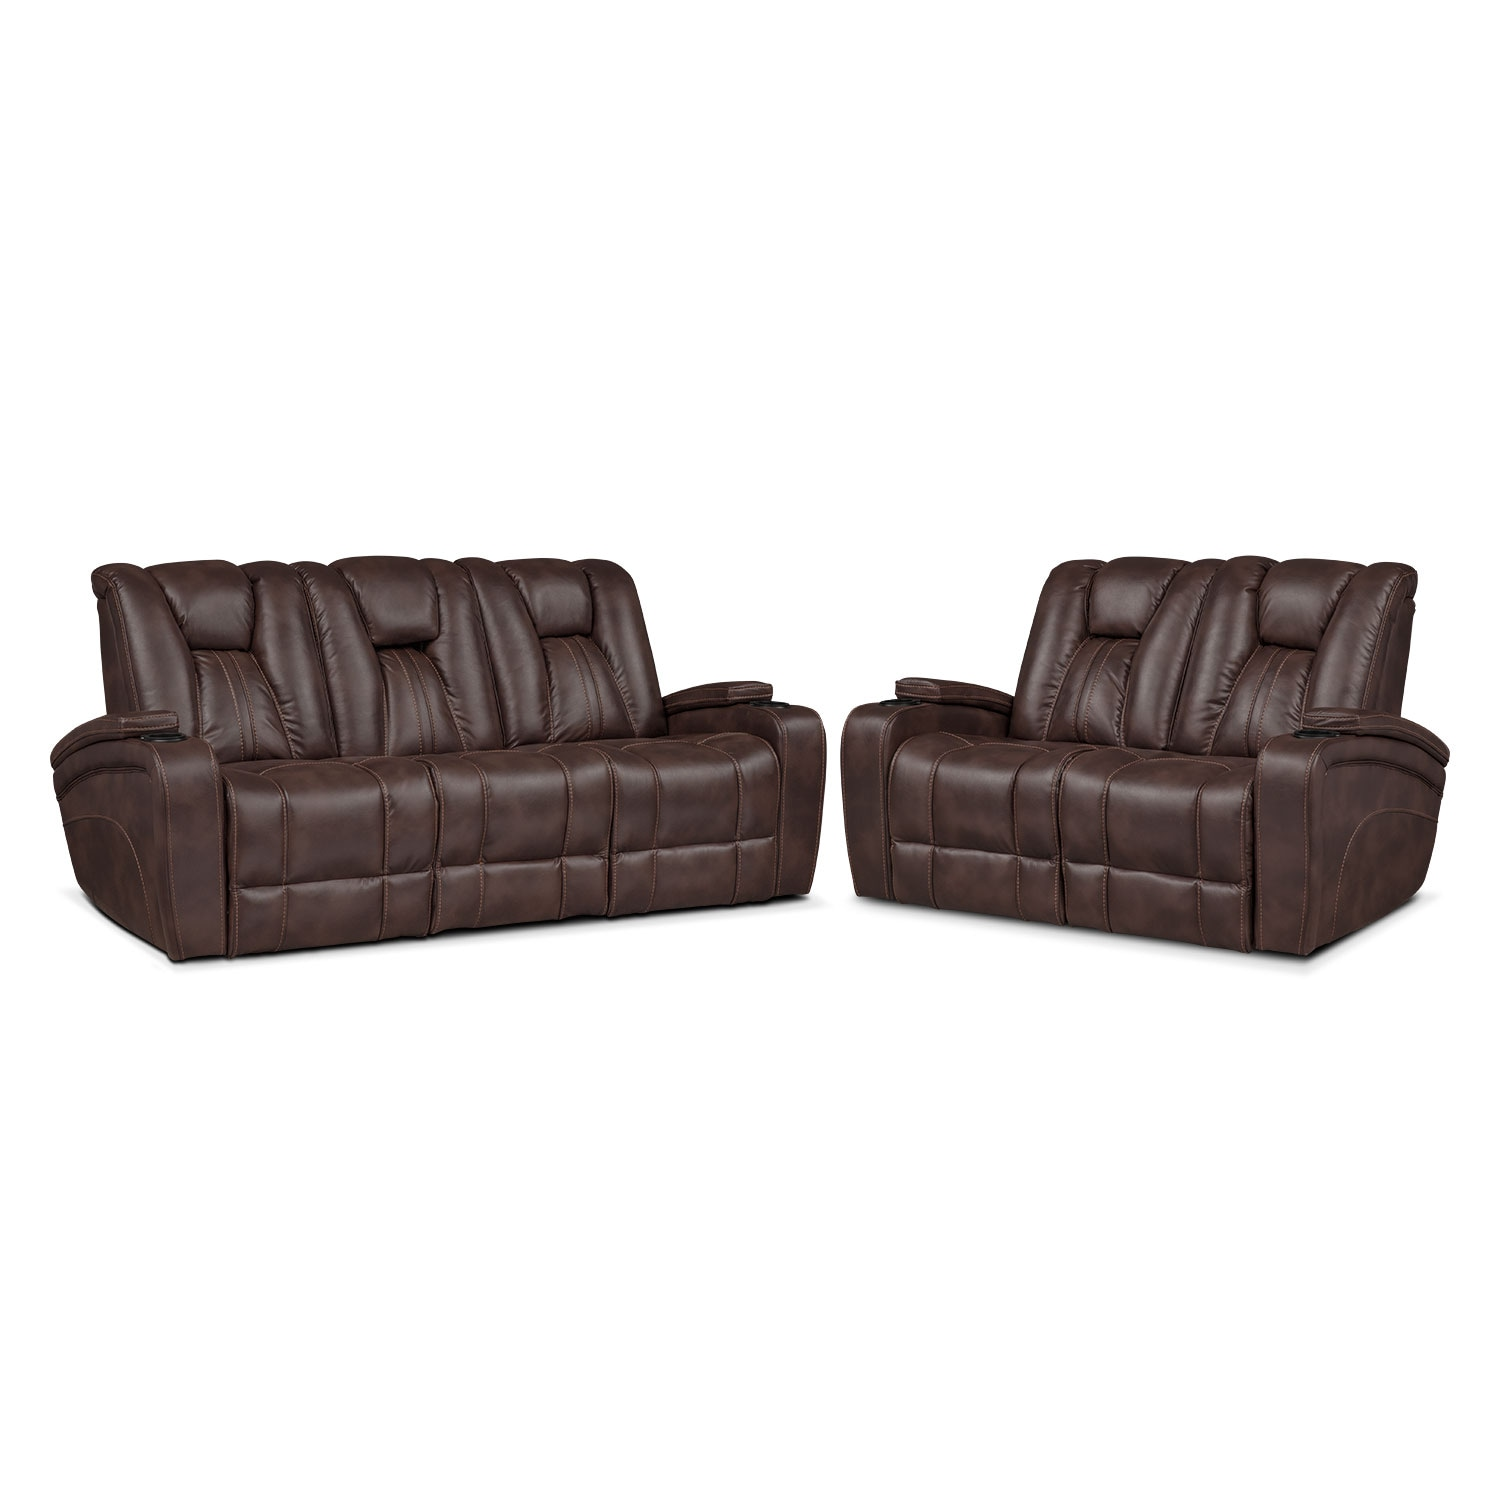 Pulsar Dual Power Reclining Sofa And Dual Power Reclining Loveseat Set Brown Value City